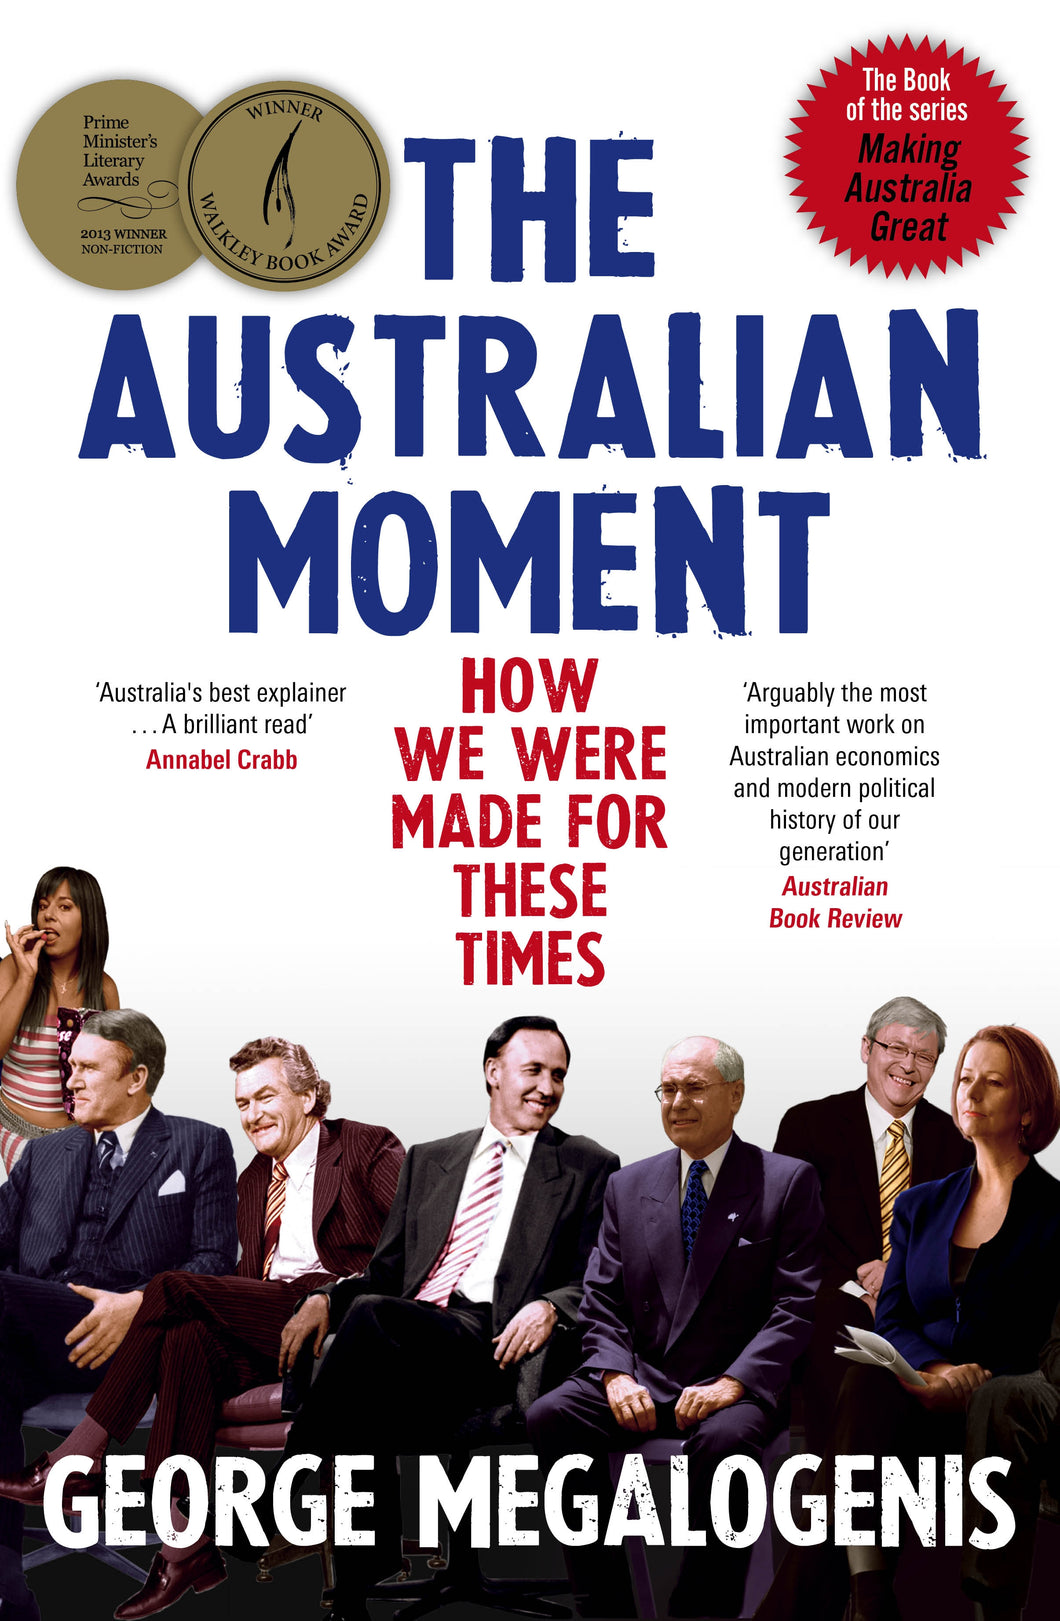 How we were made for these times  - Australian Moment